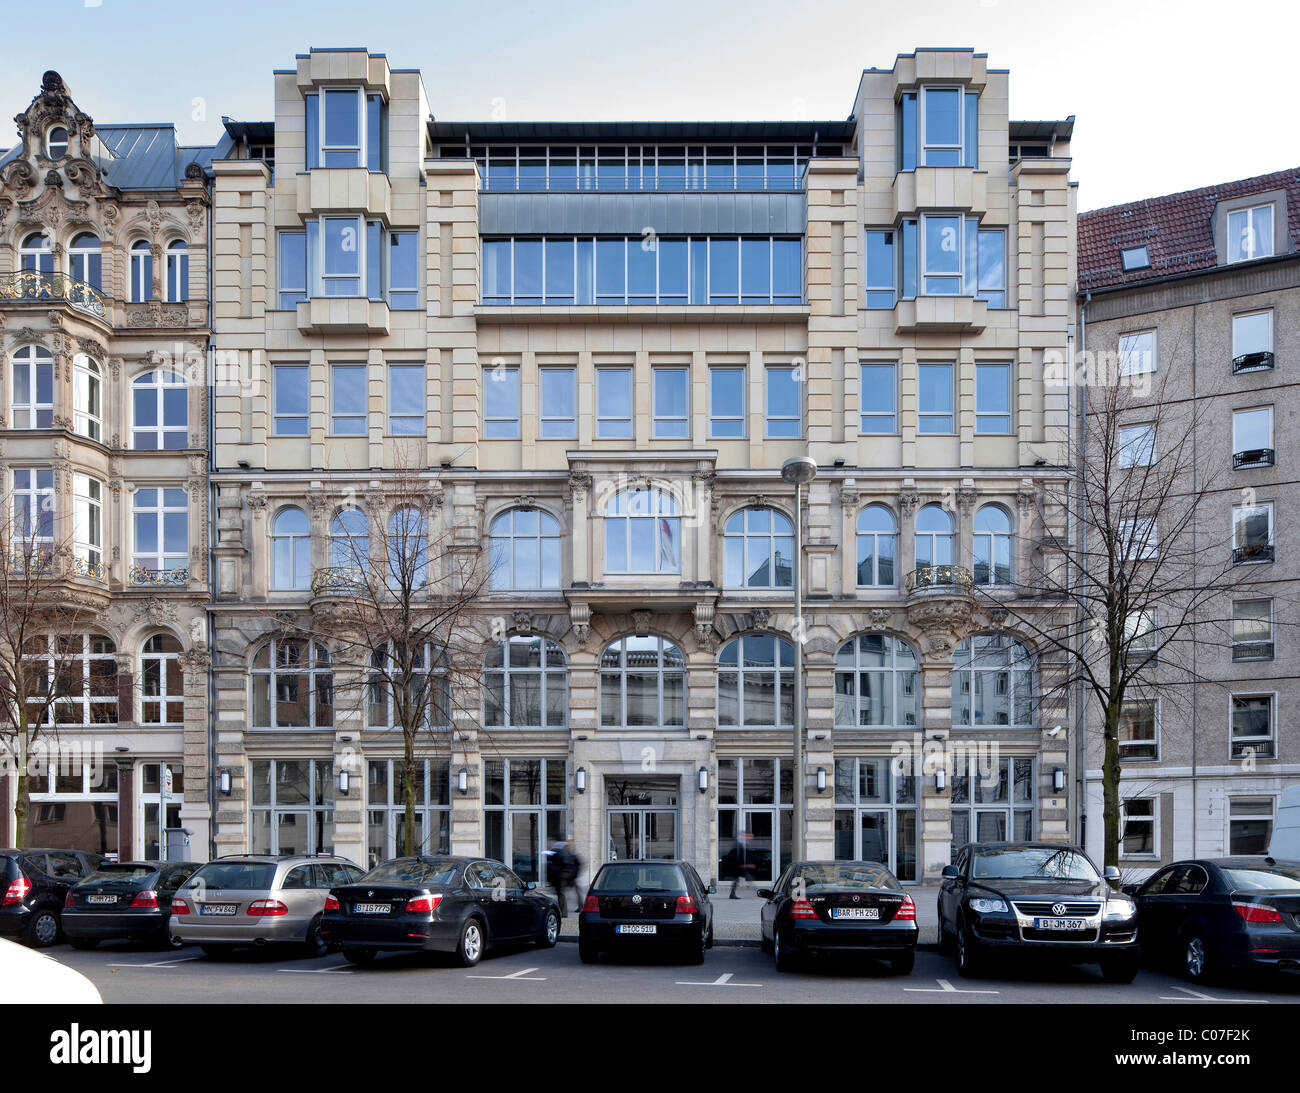 Historic office building with added storey in the Jaegerstrasse street, Mitte district, Berlin, Germany, Europe - Stock Image